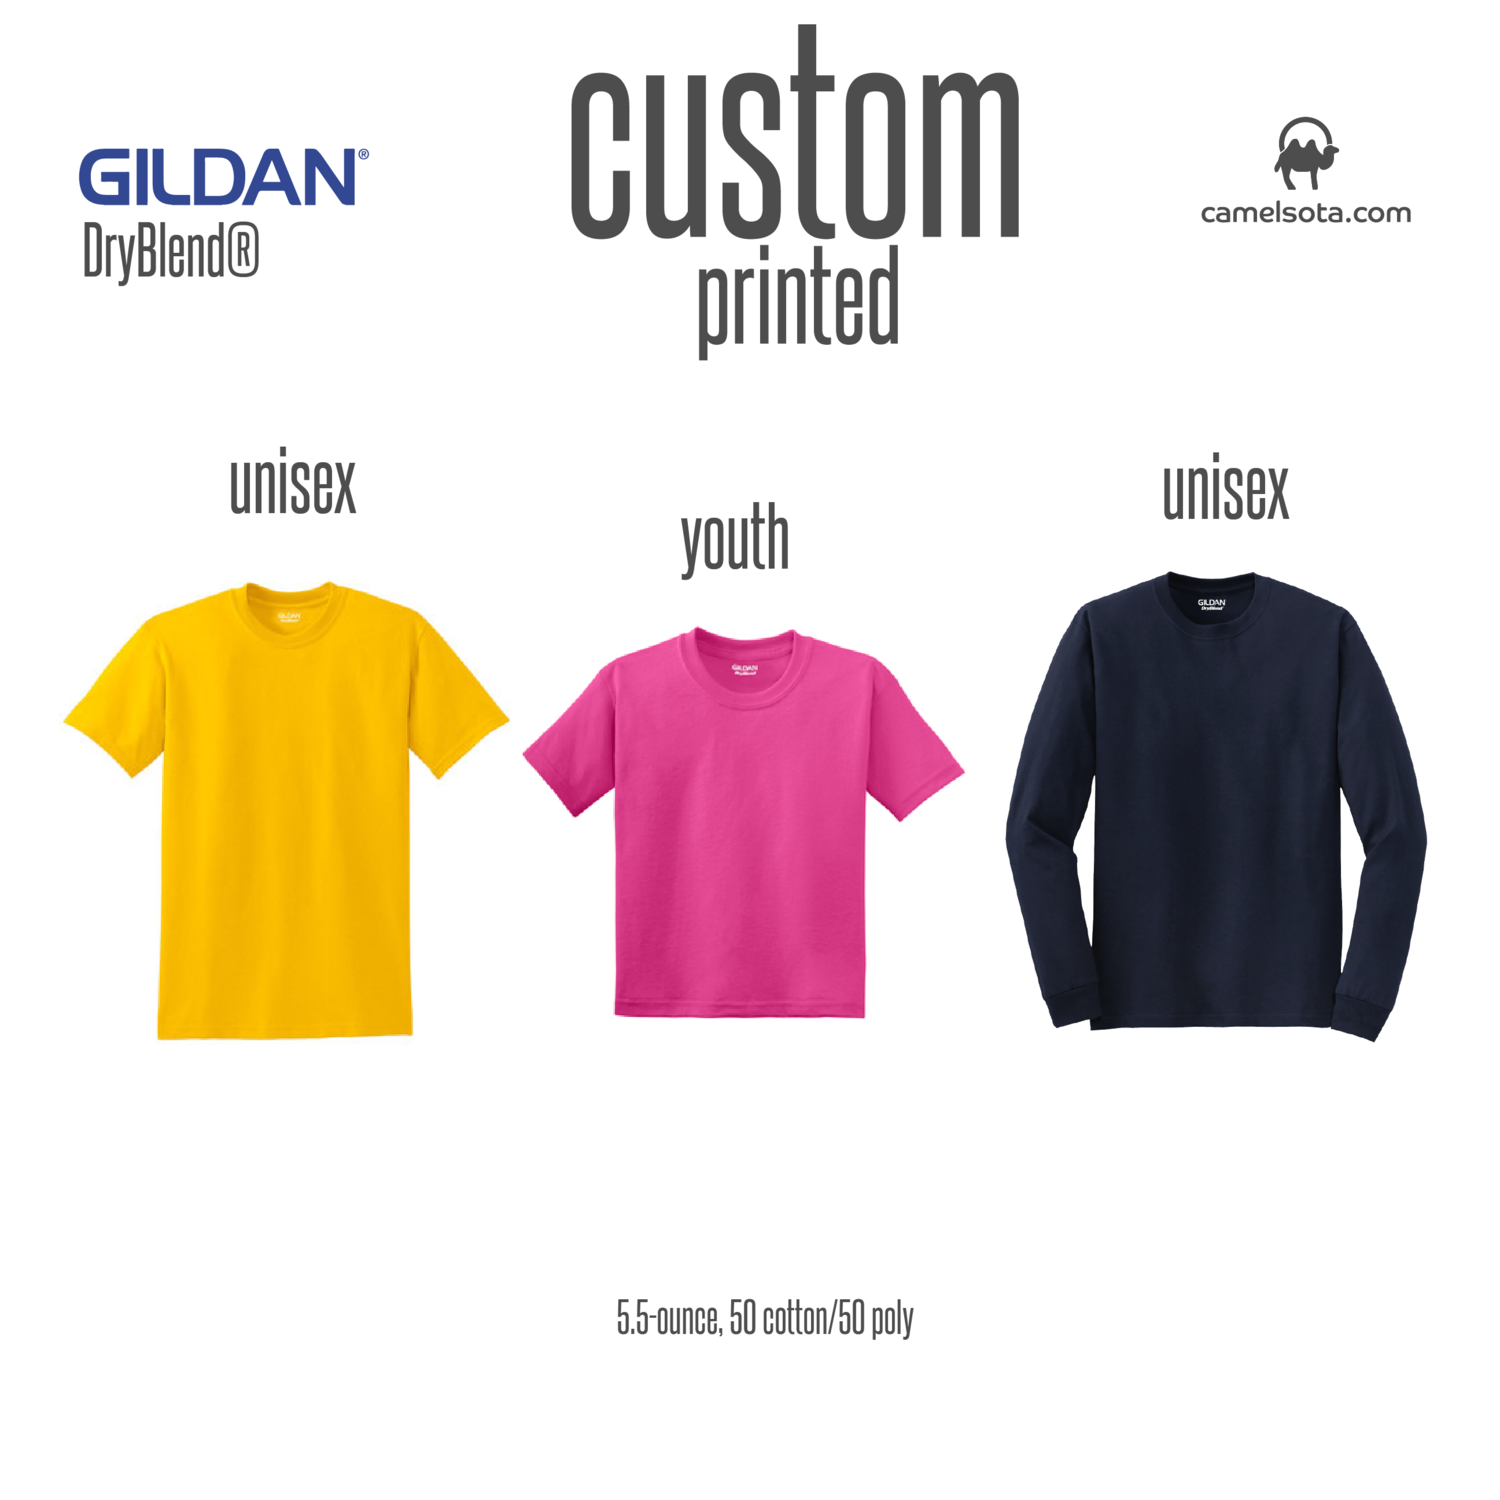 Custom Gildan DryBlend 50 Cotton/50 Poly T-Shirt